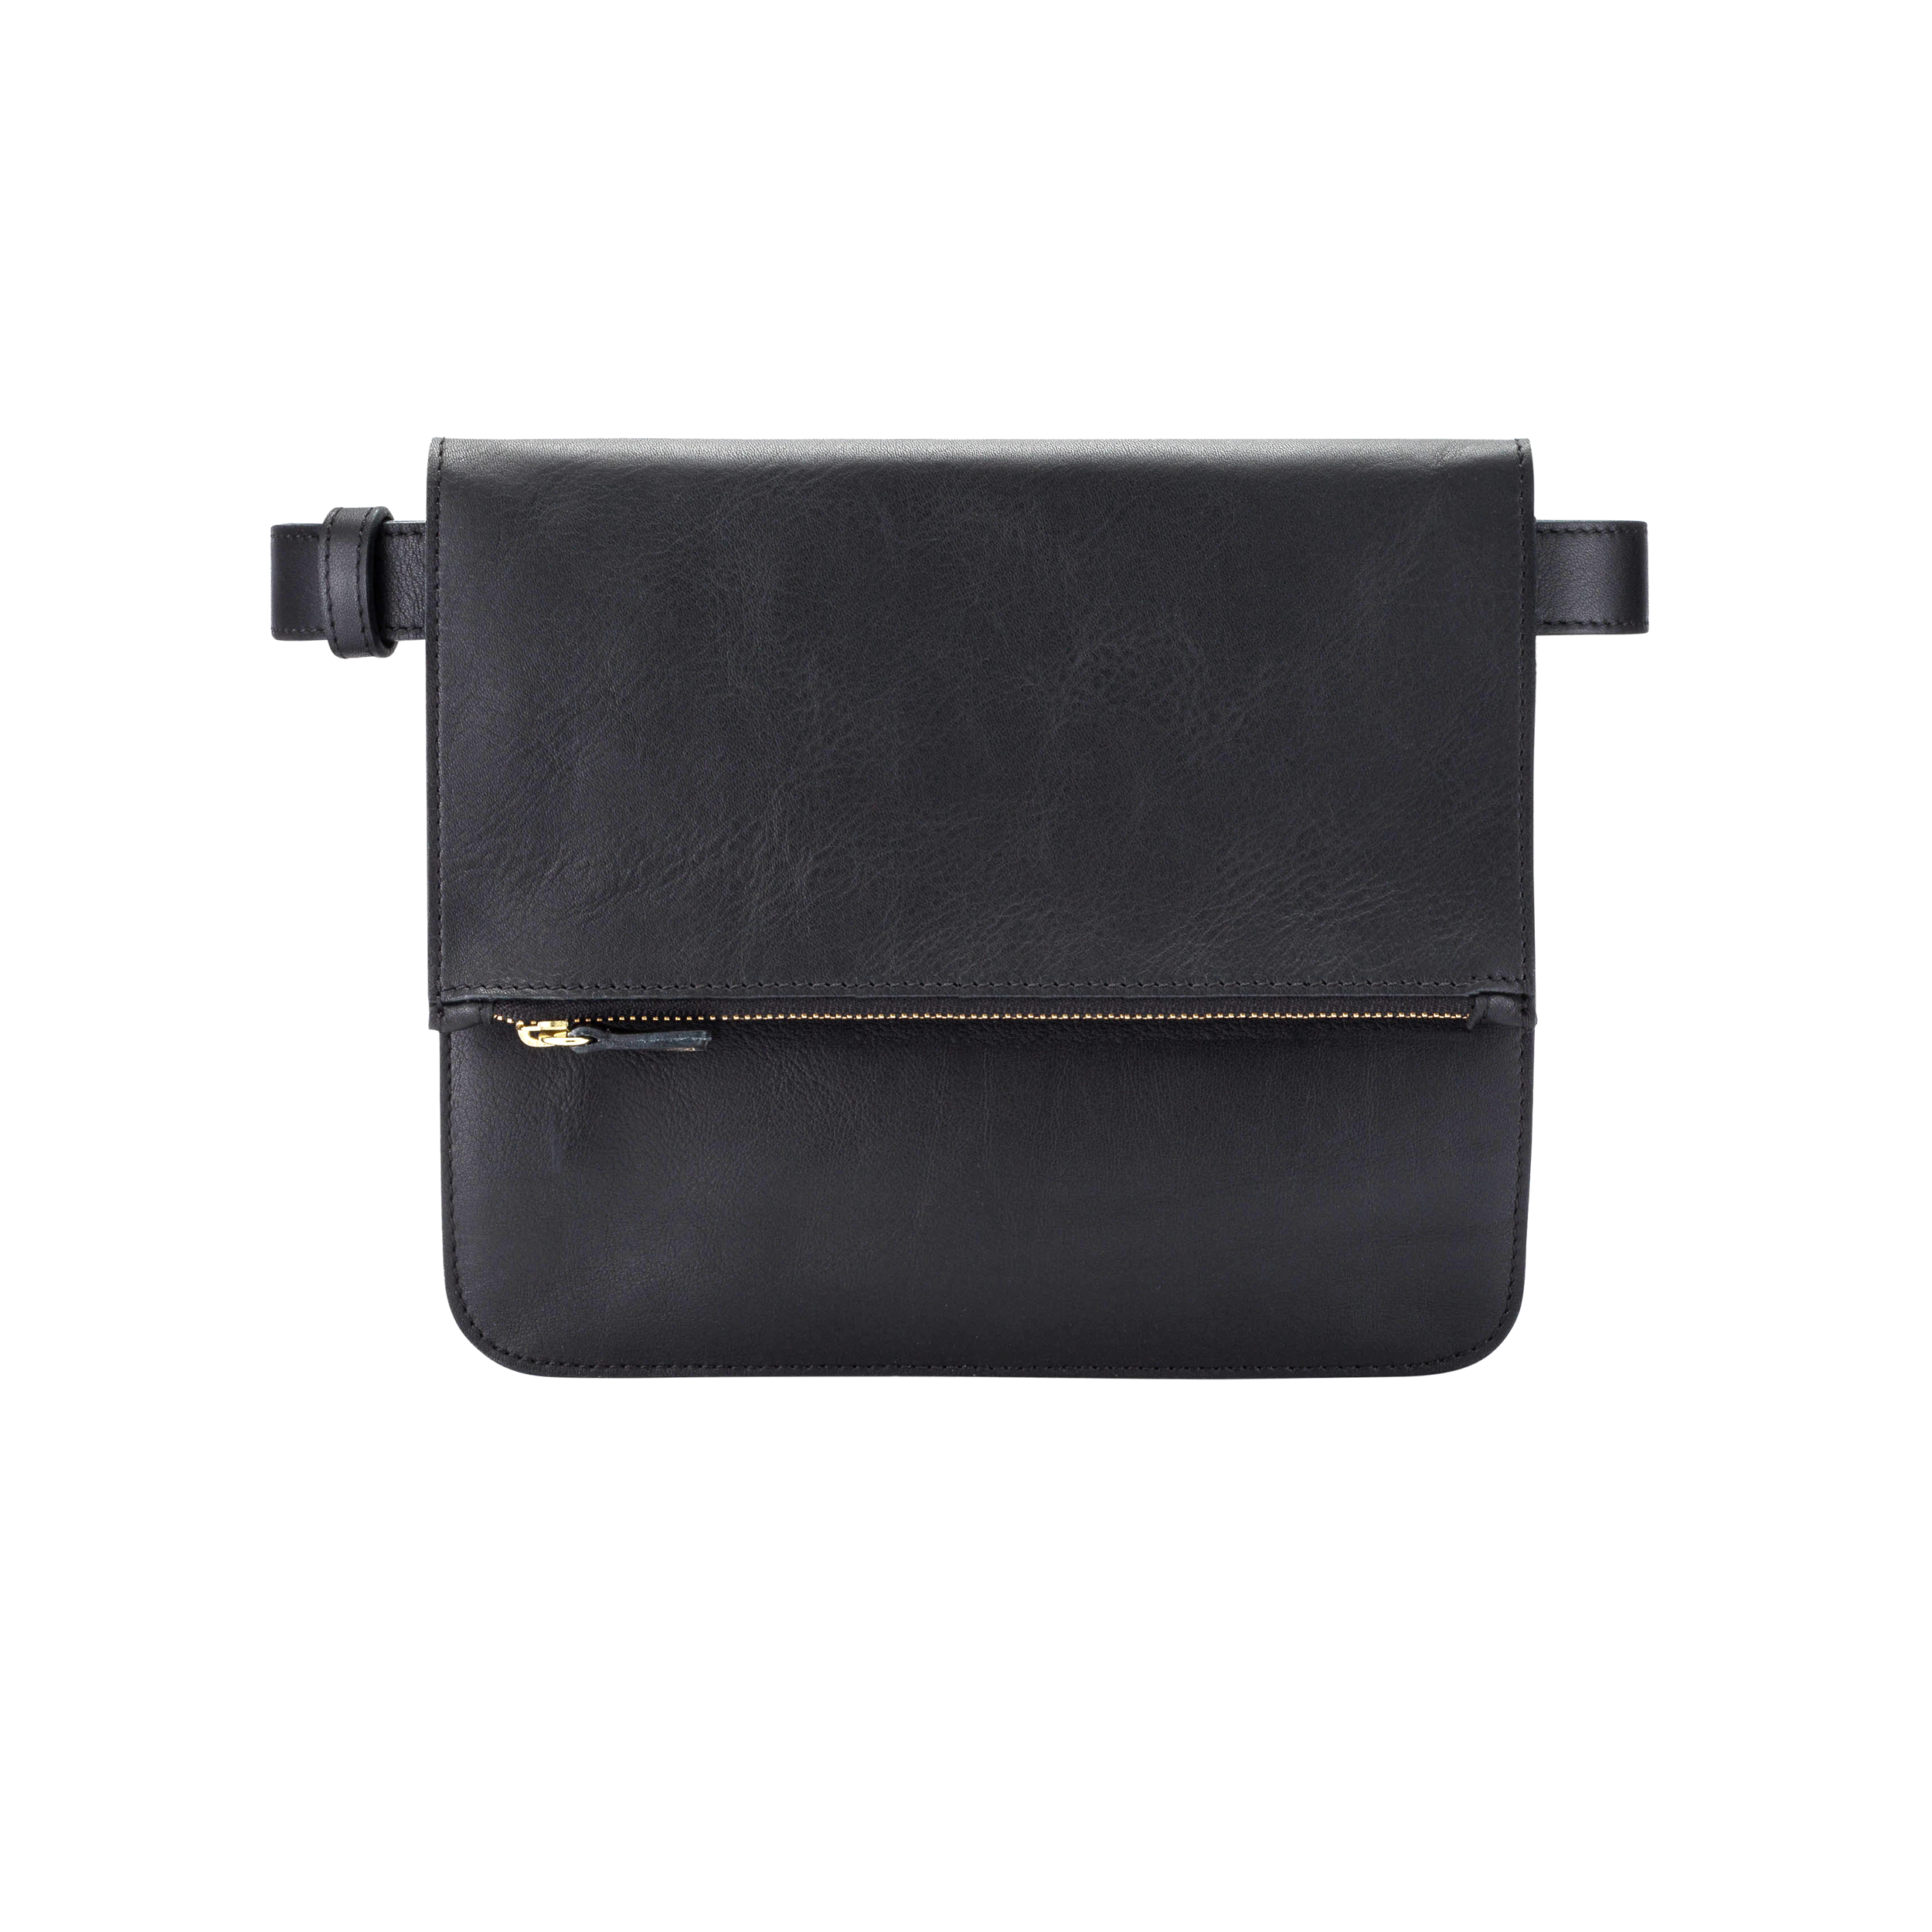 Tourist 3 in 1 leather belt bag